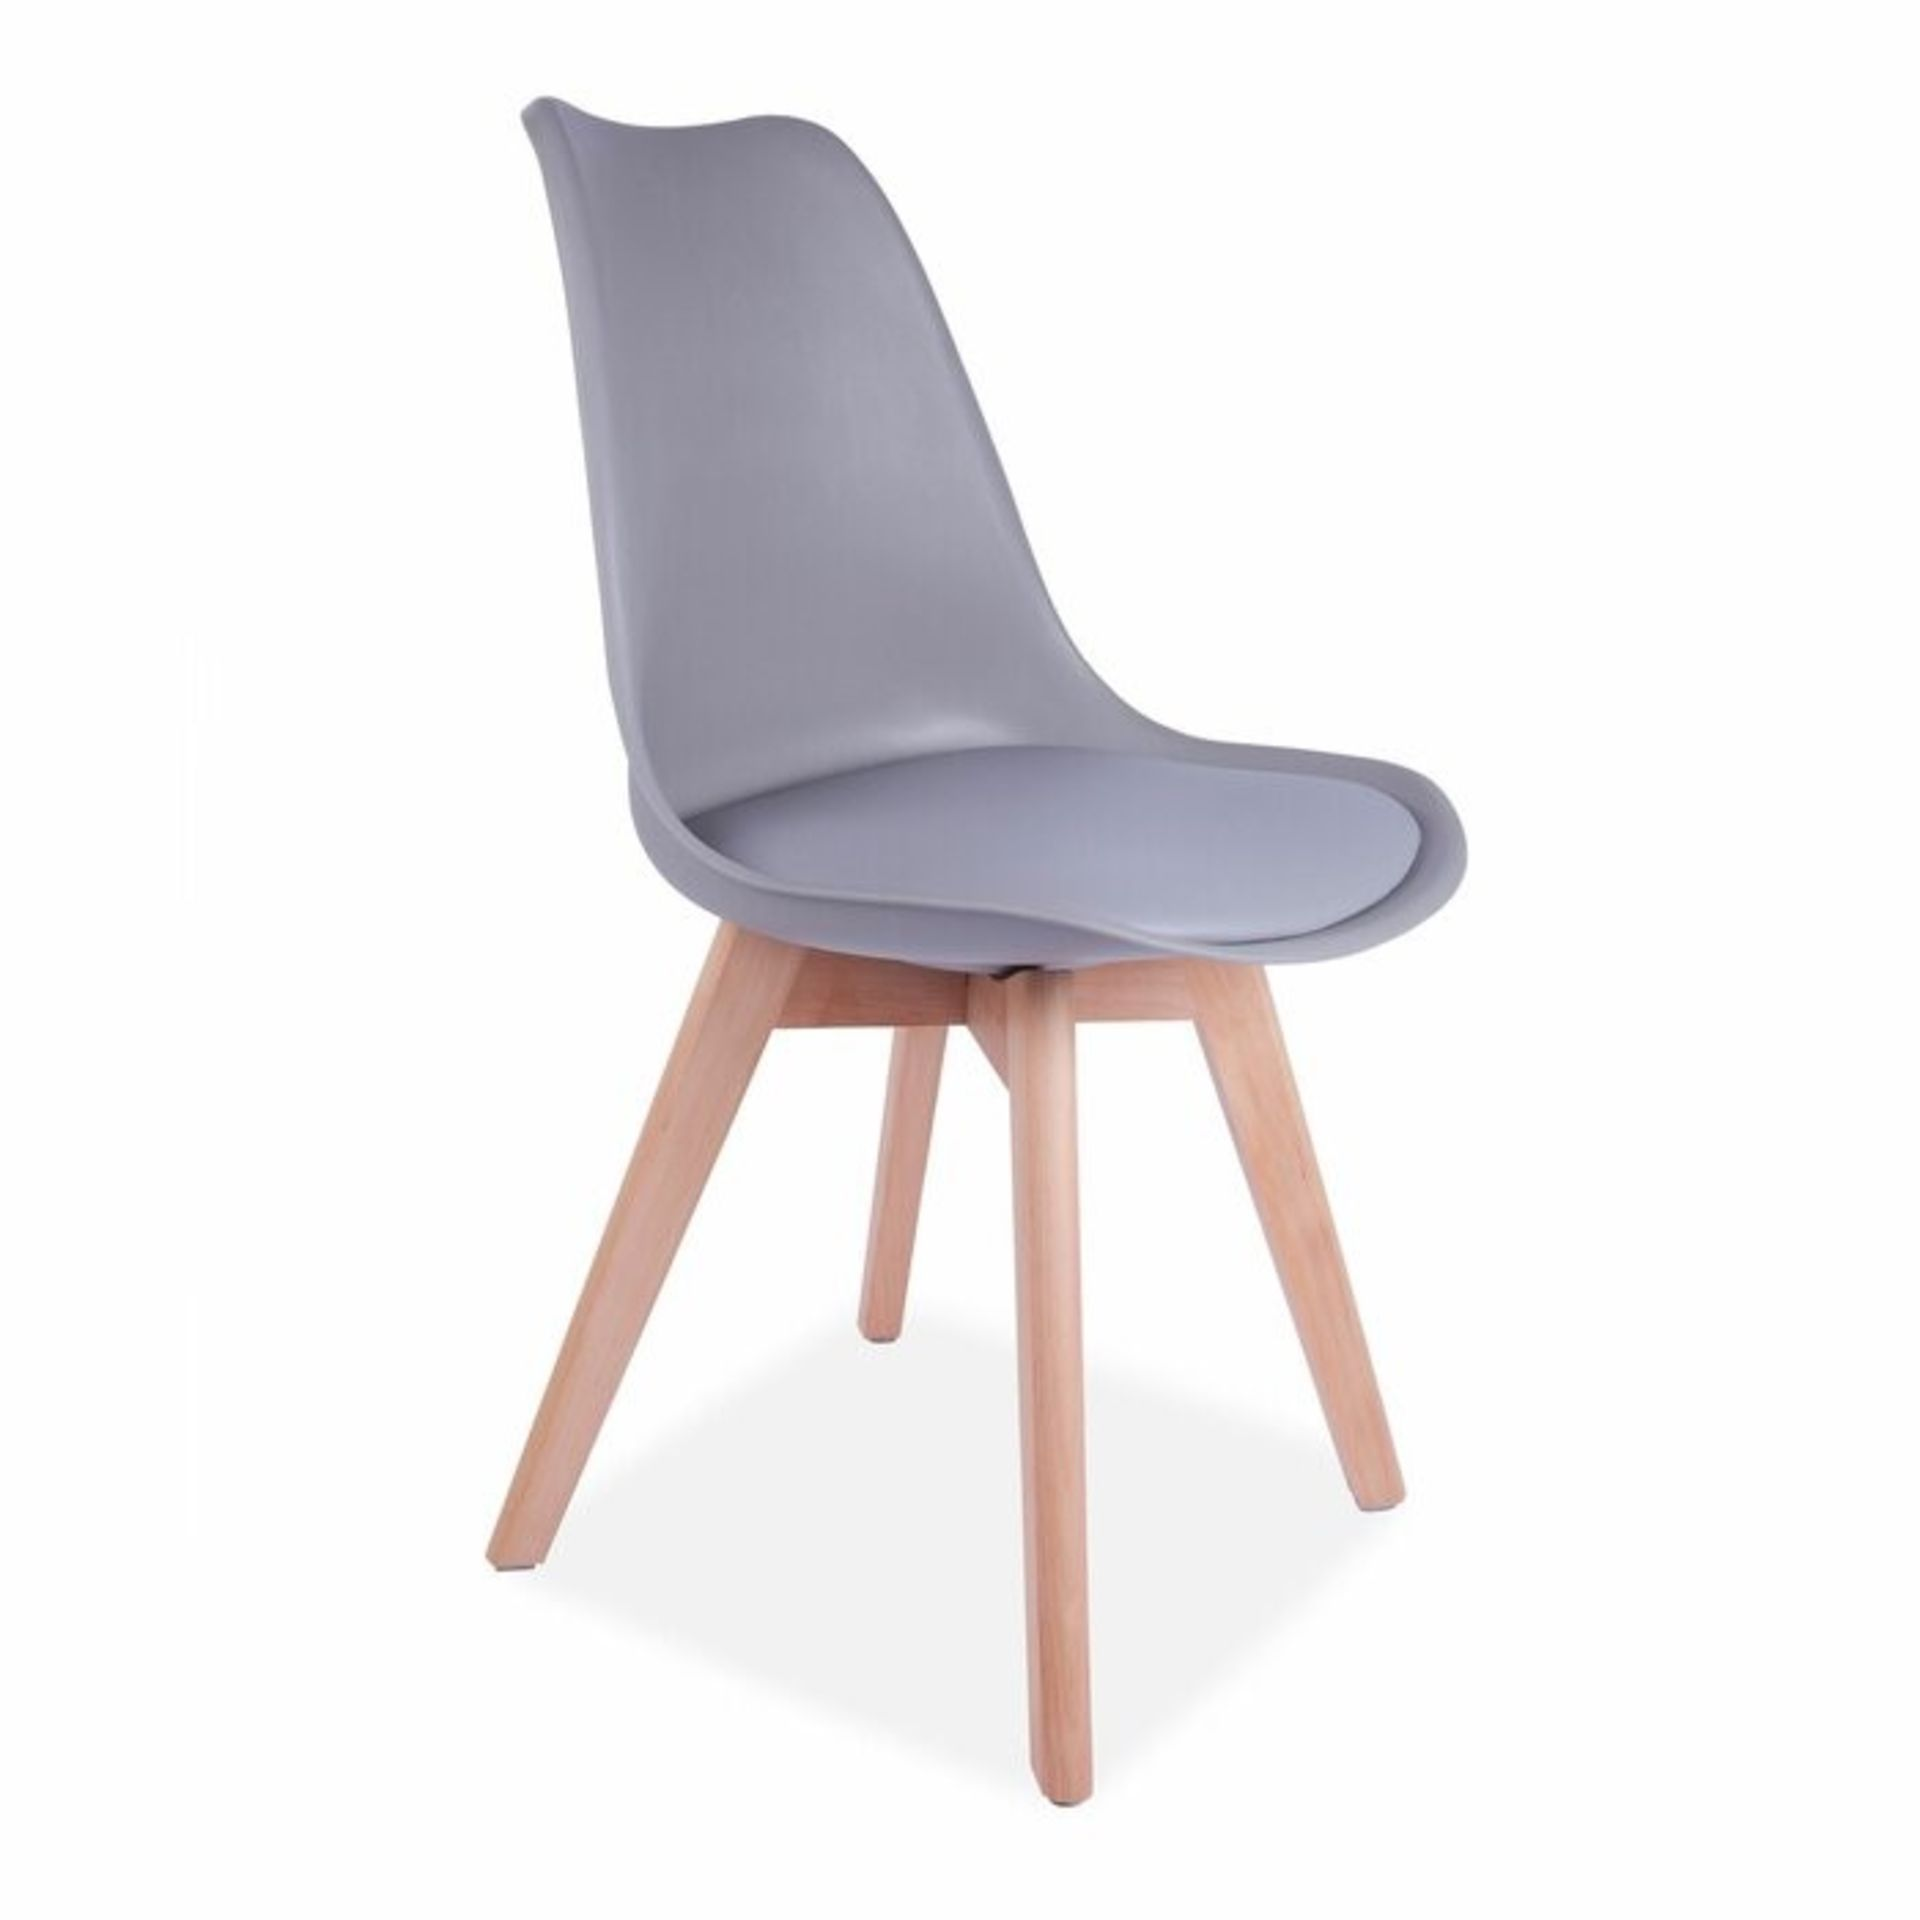 ENMORE UPHOLSTERED DINING CHAIR BY ZIPCODE DESIGN